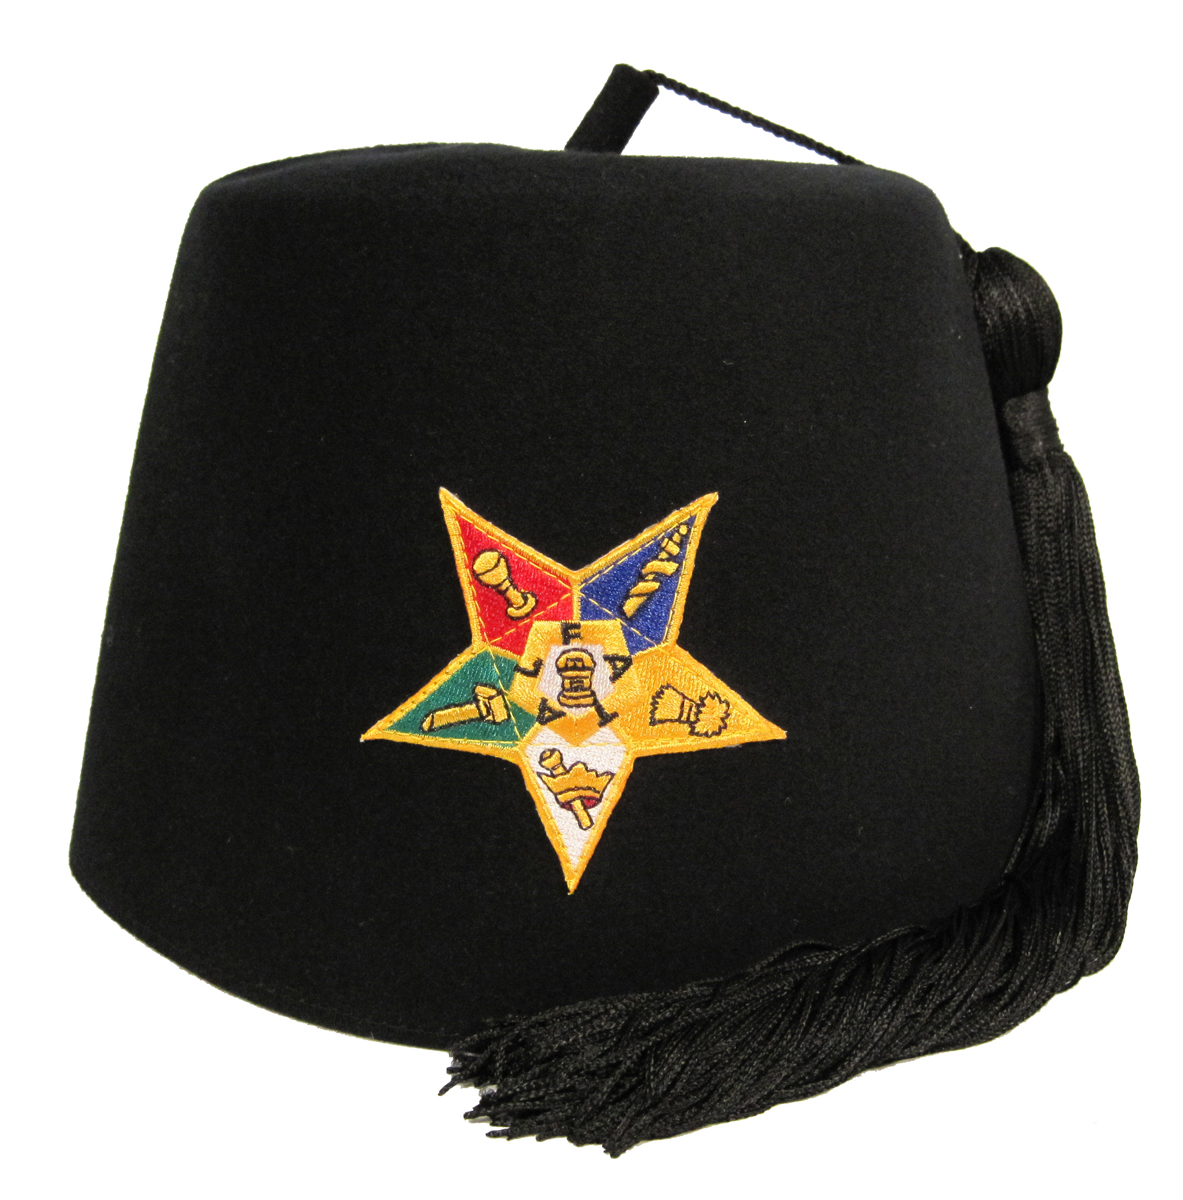 "OES Black Stock fez with Star and Black 12"" tassel"